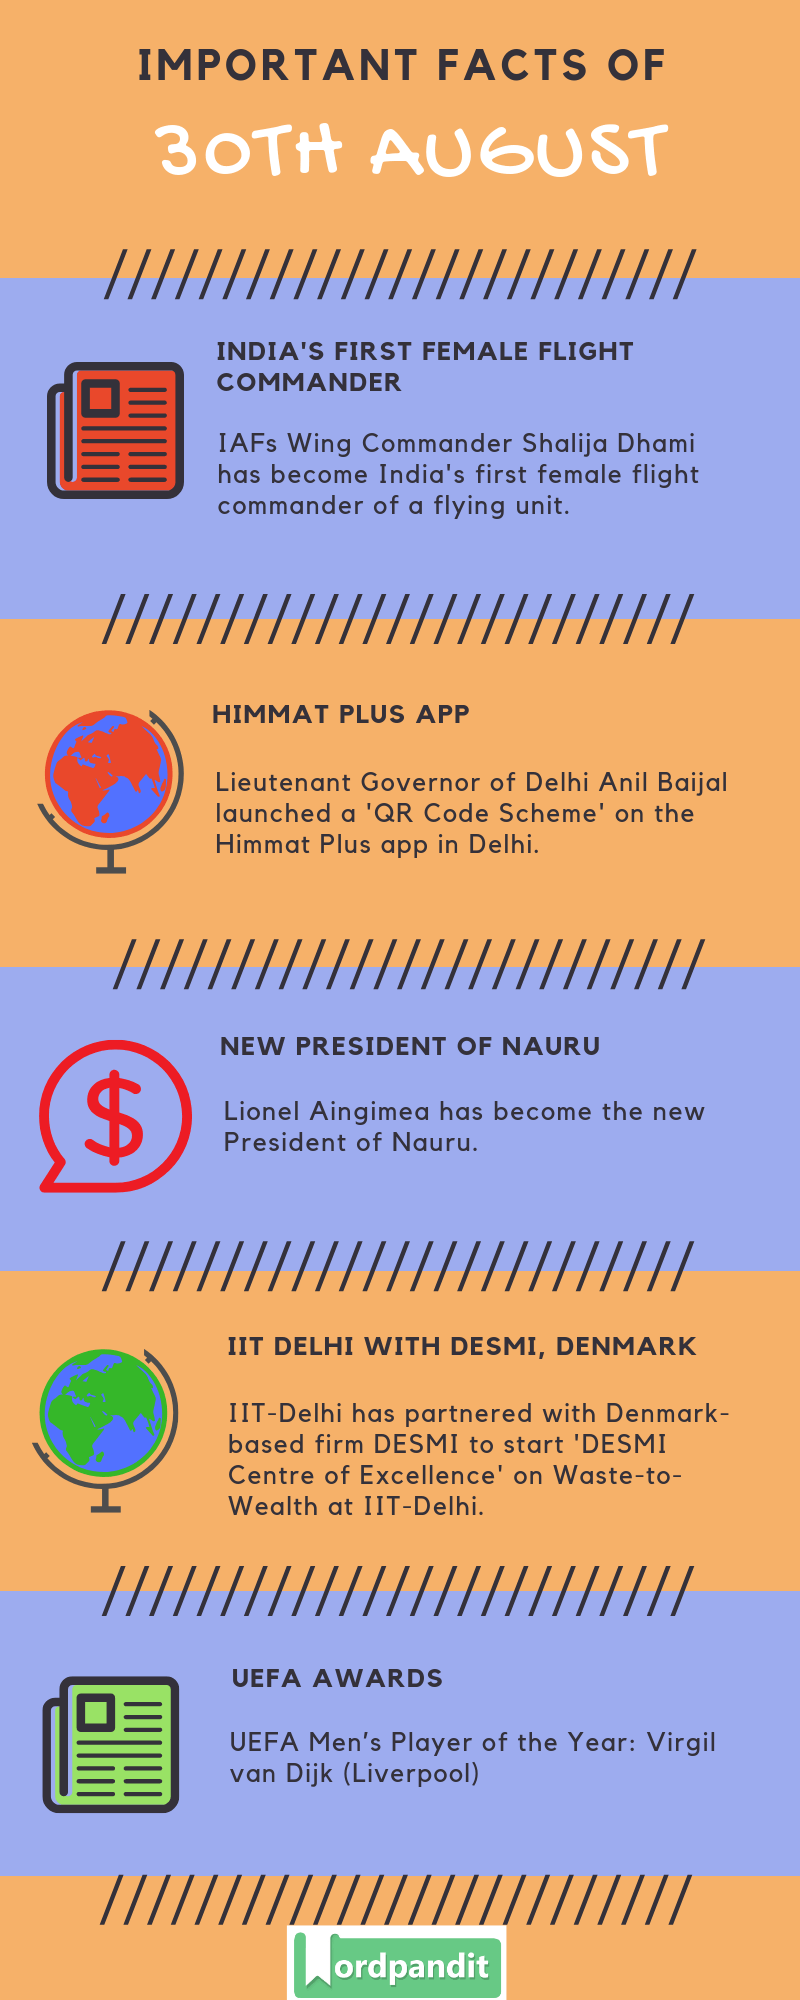 Daily Current Affairs 30 August 2019 Current Affairs Quiz 30 August 2019 Current Affairs Infographic